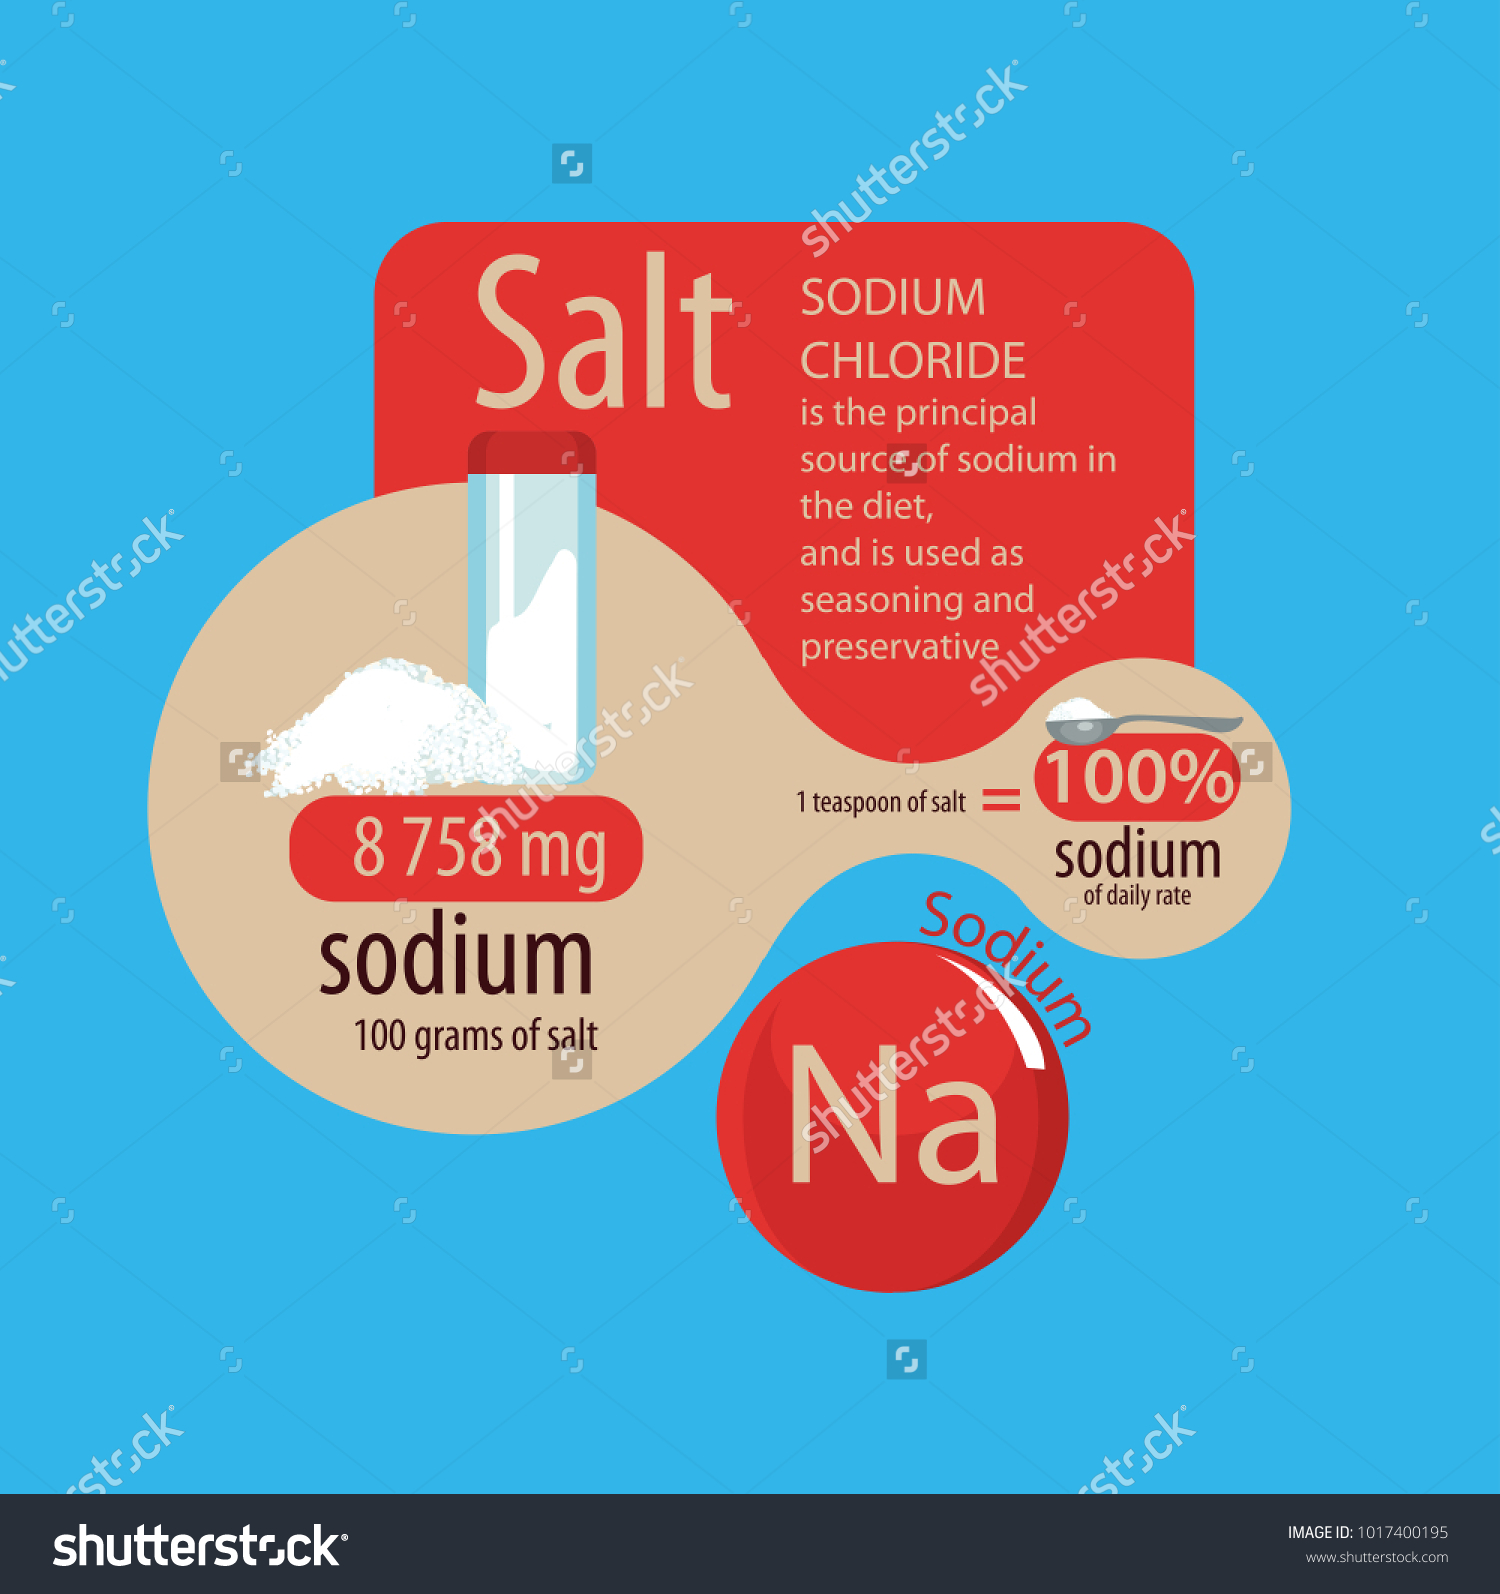 Sodium In The Salt A Teaspoon Of Salt Is 100 Percent Of The Daily Intake